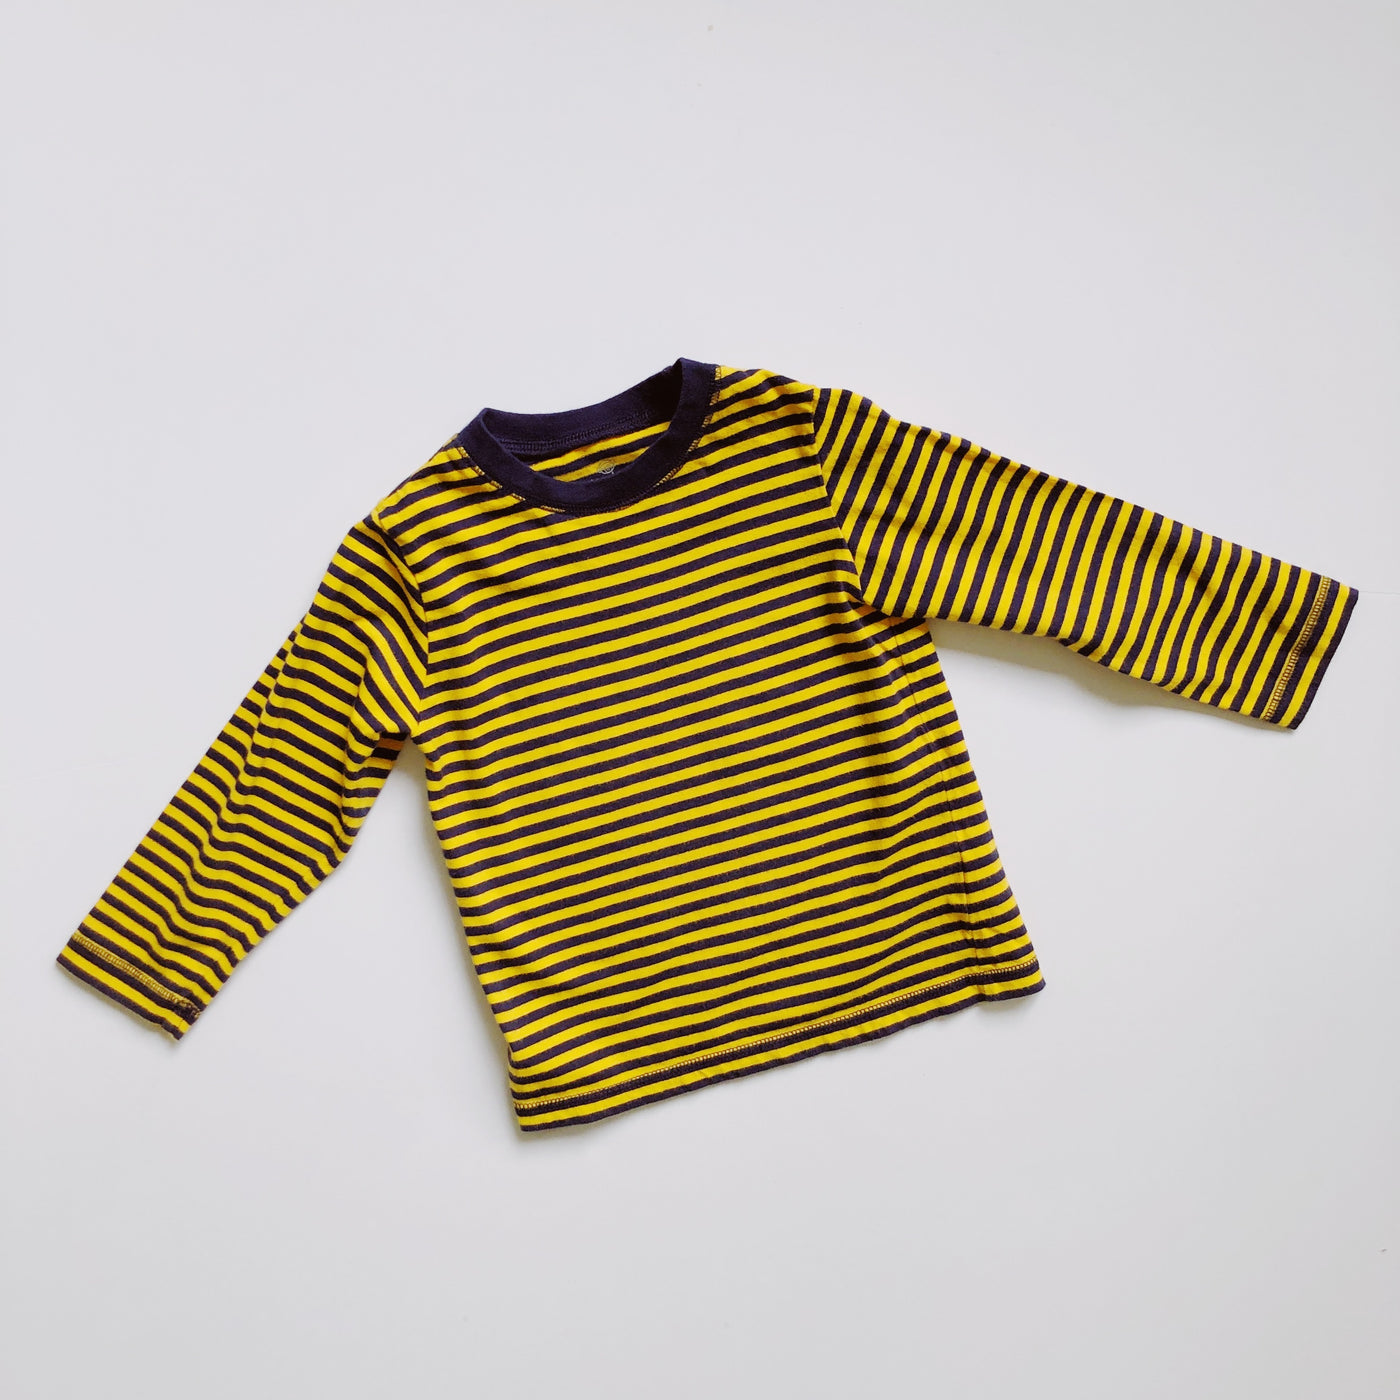 Navy & Gold Striped Long-Sleeve Tee / Size 3T